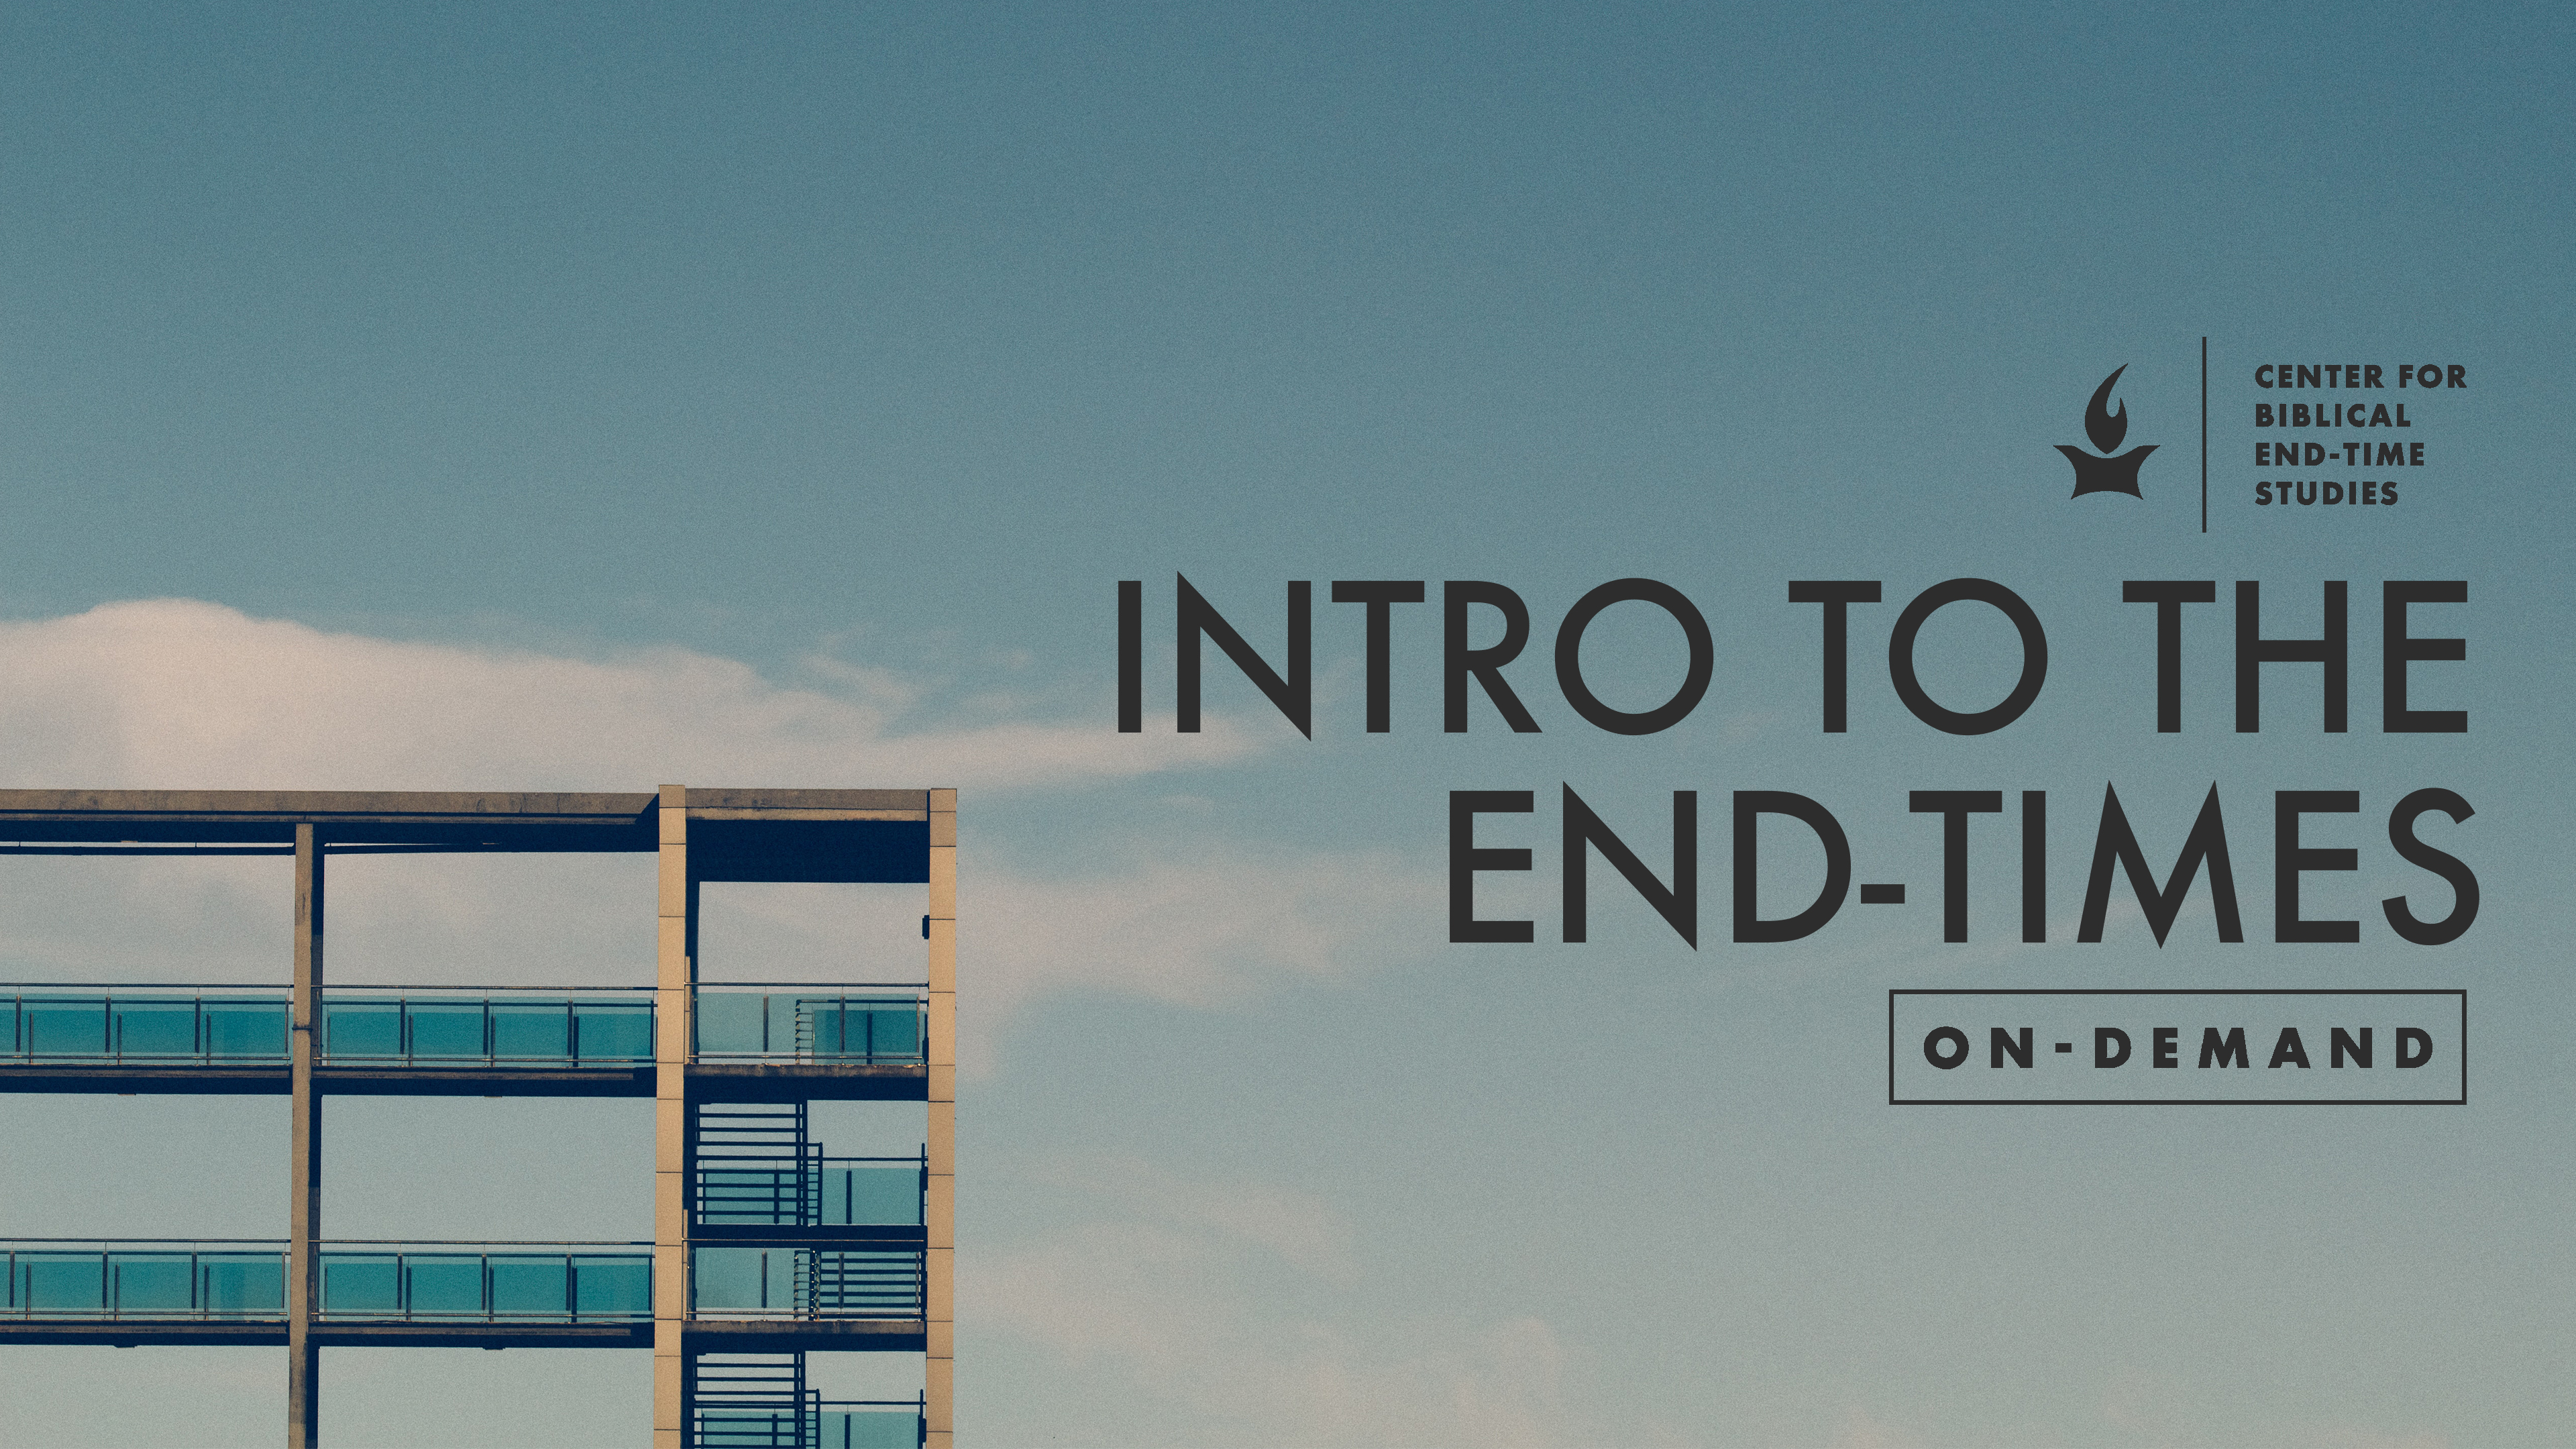 Intro To The End-Times